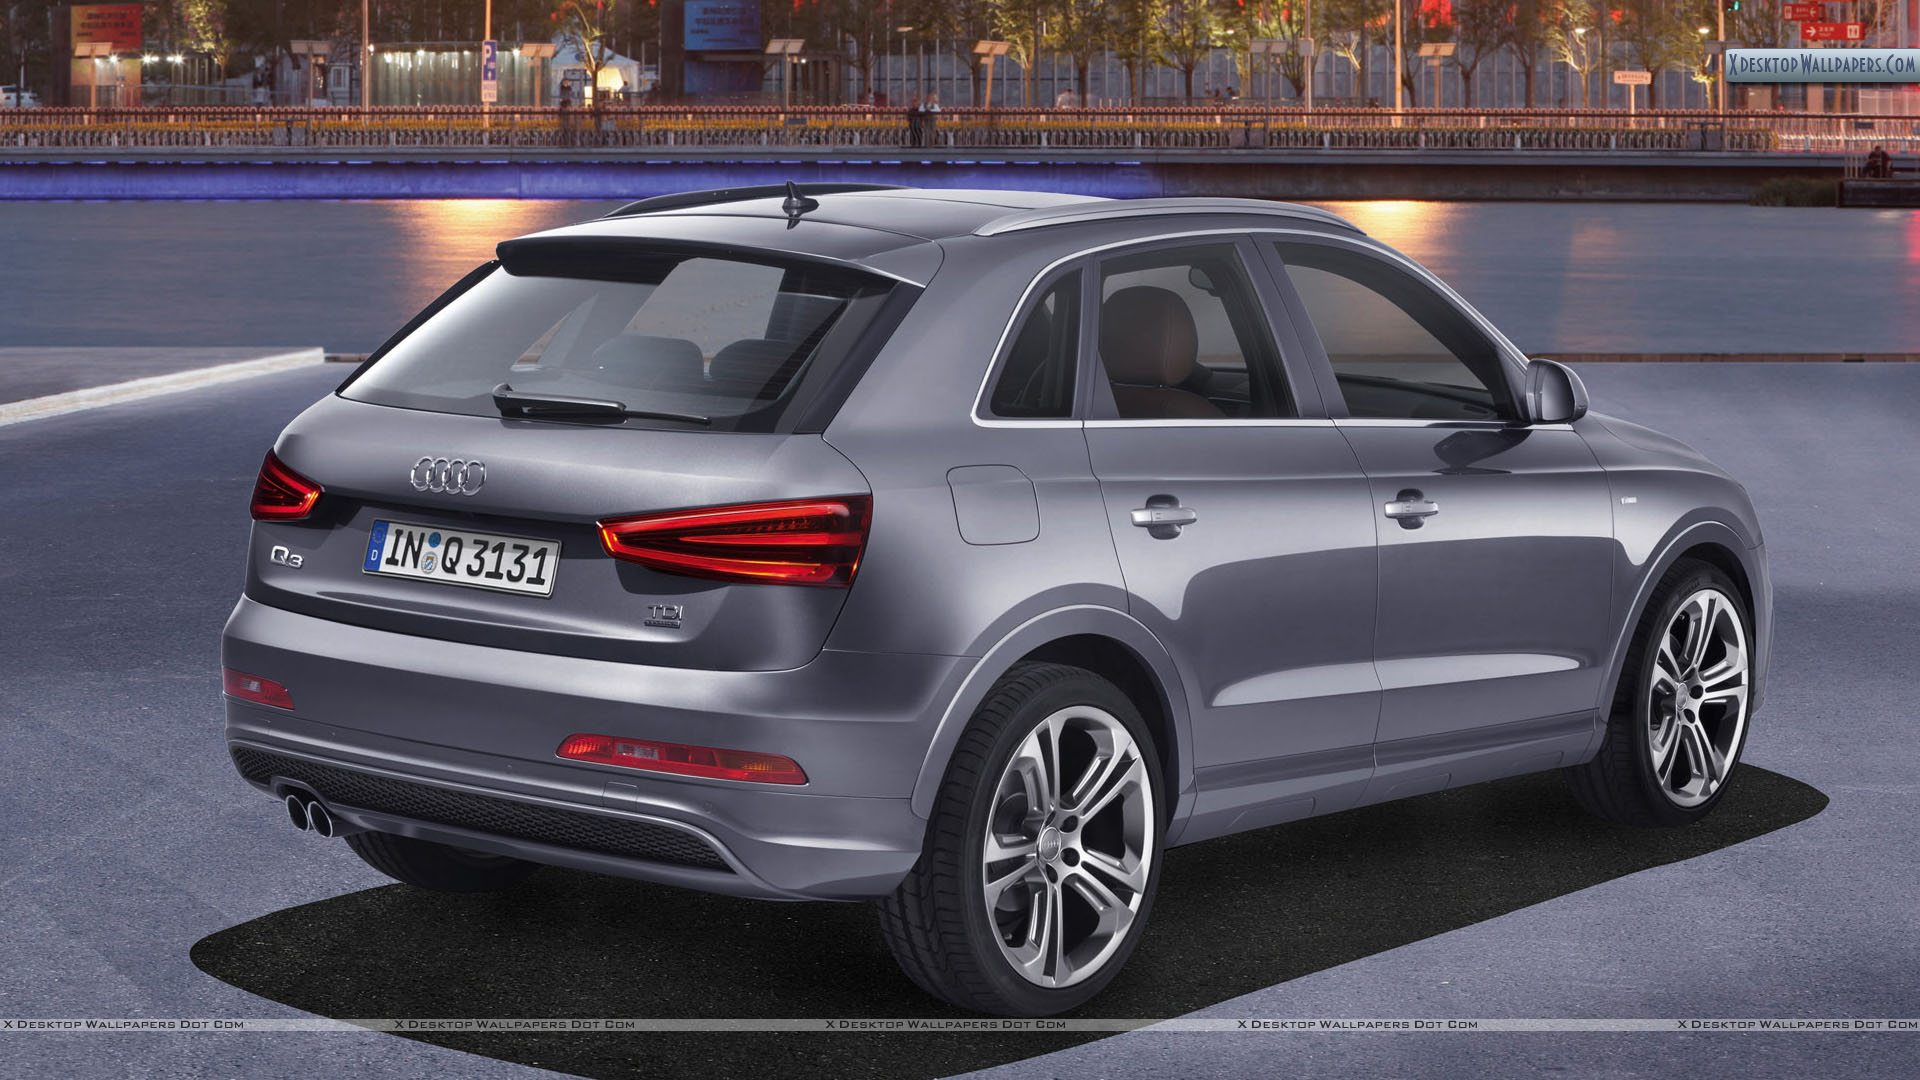 2012 audi q3 quattro s line silver color parked wallpaper. Black Bedroom Furniture Sets. Home Design Ideas